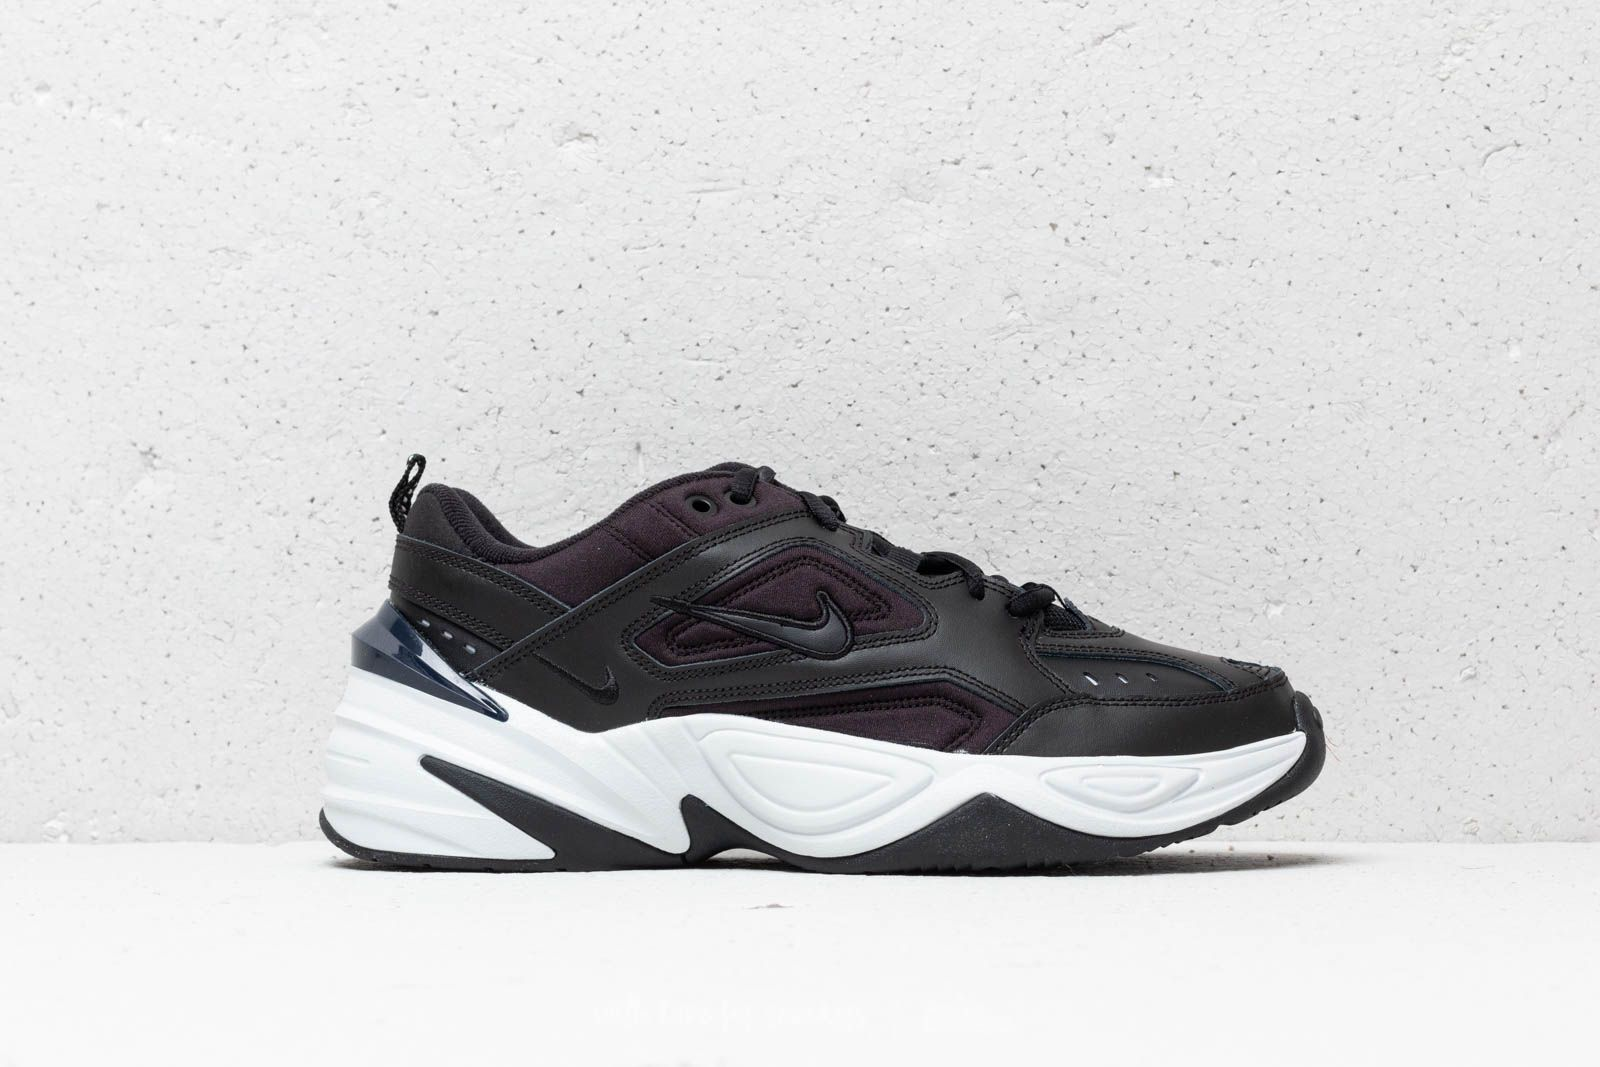 check out 009f7 f18f3 Nike M2K Tekno Black  Black-Off White-Obsidian at a great price 99